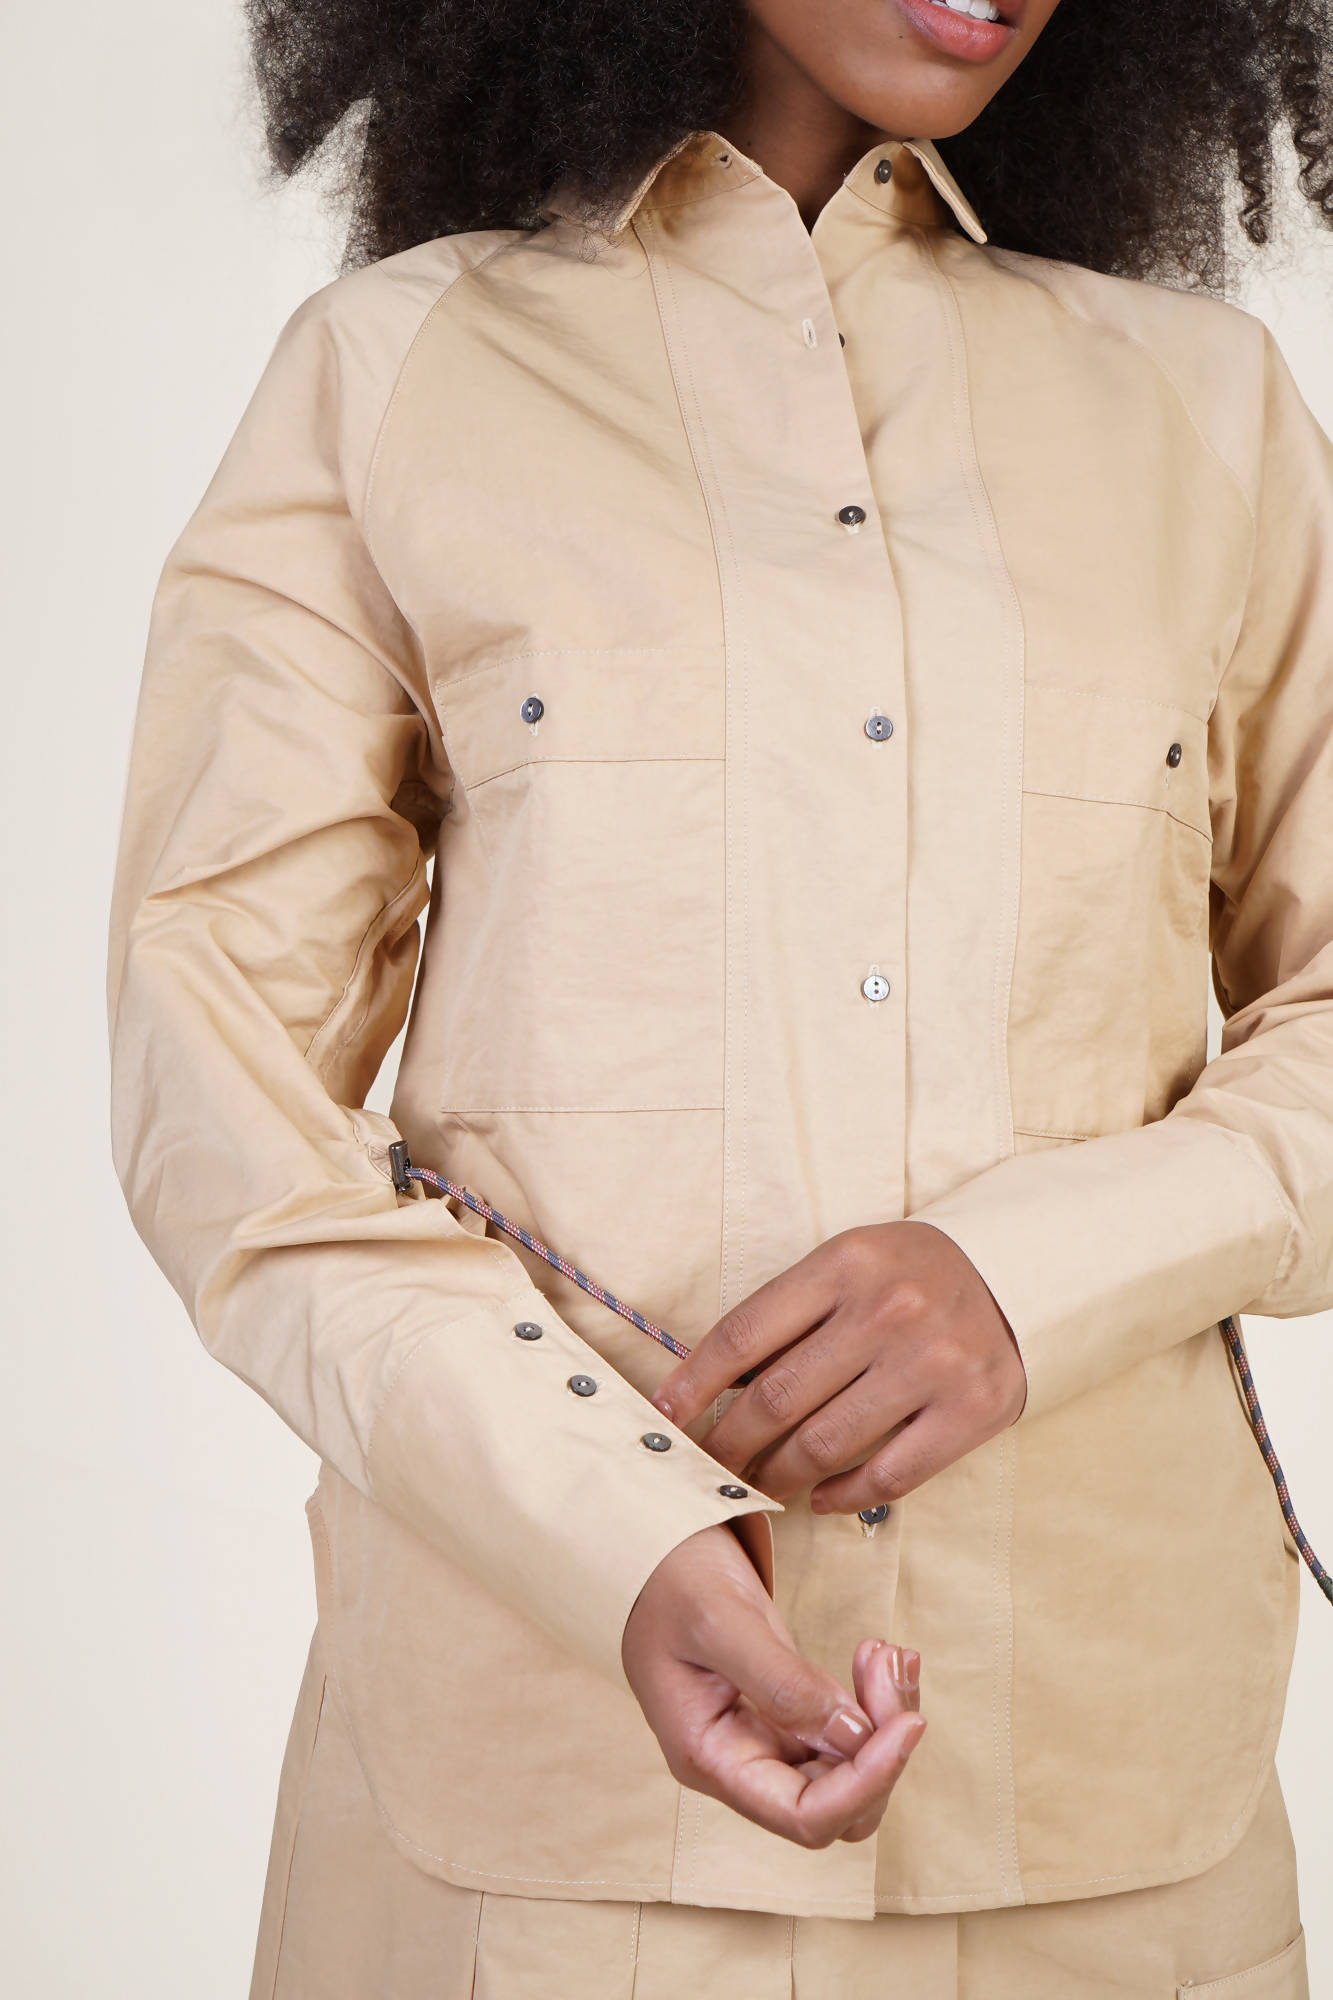 Windsor Shirt in Khaki